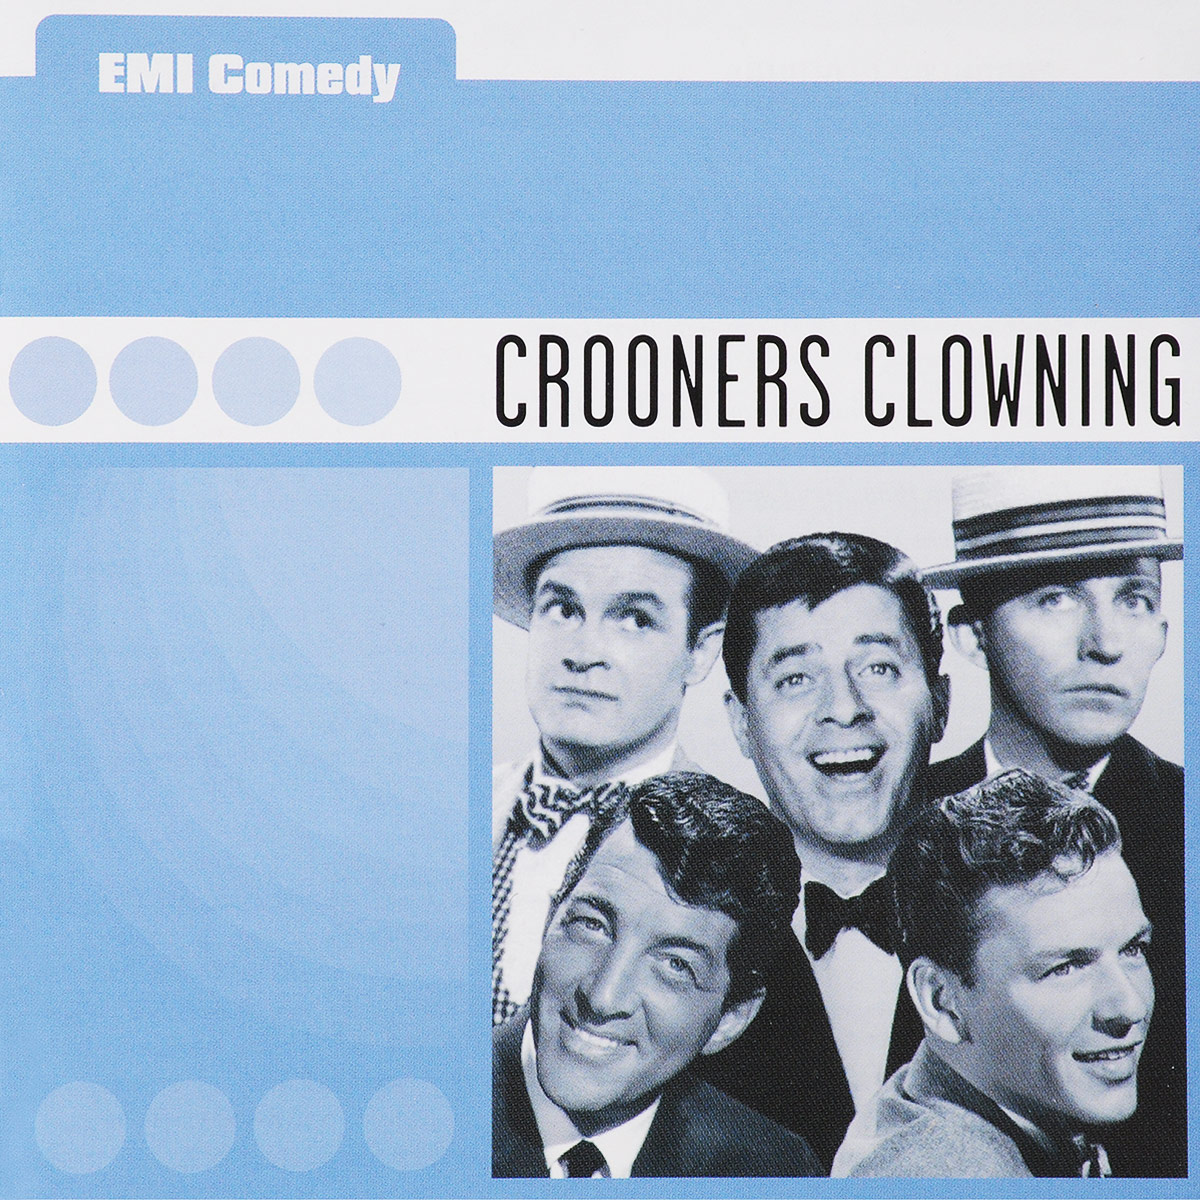 VARIOUS ARTISTS. EMI COMEDY - CROONERS CLOWING